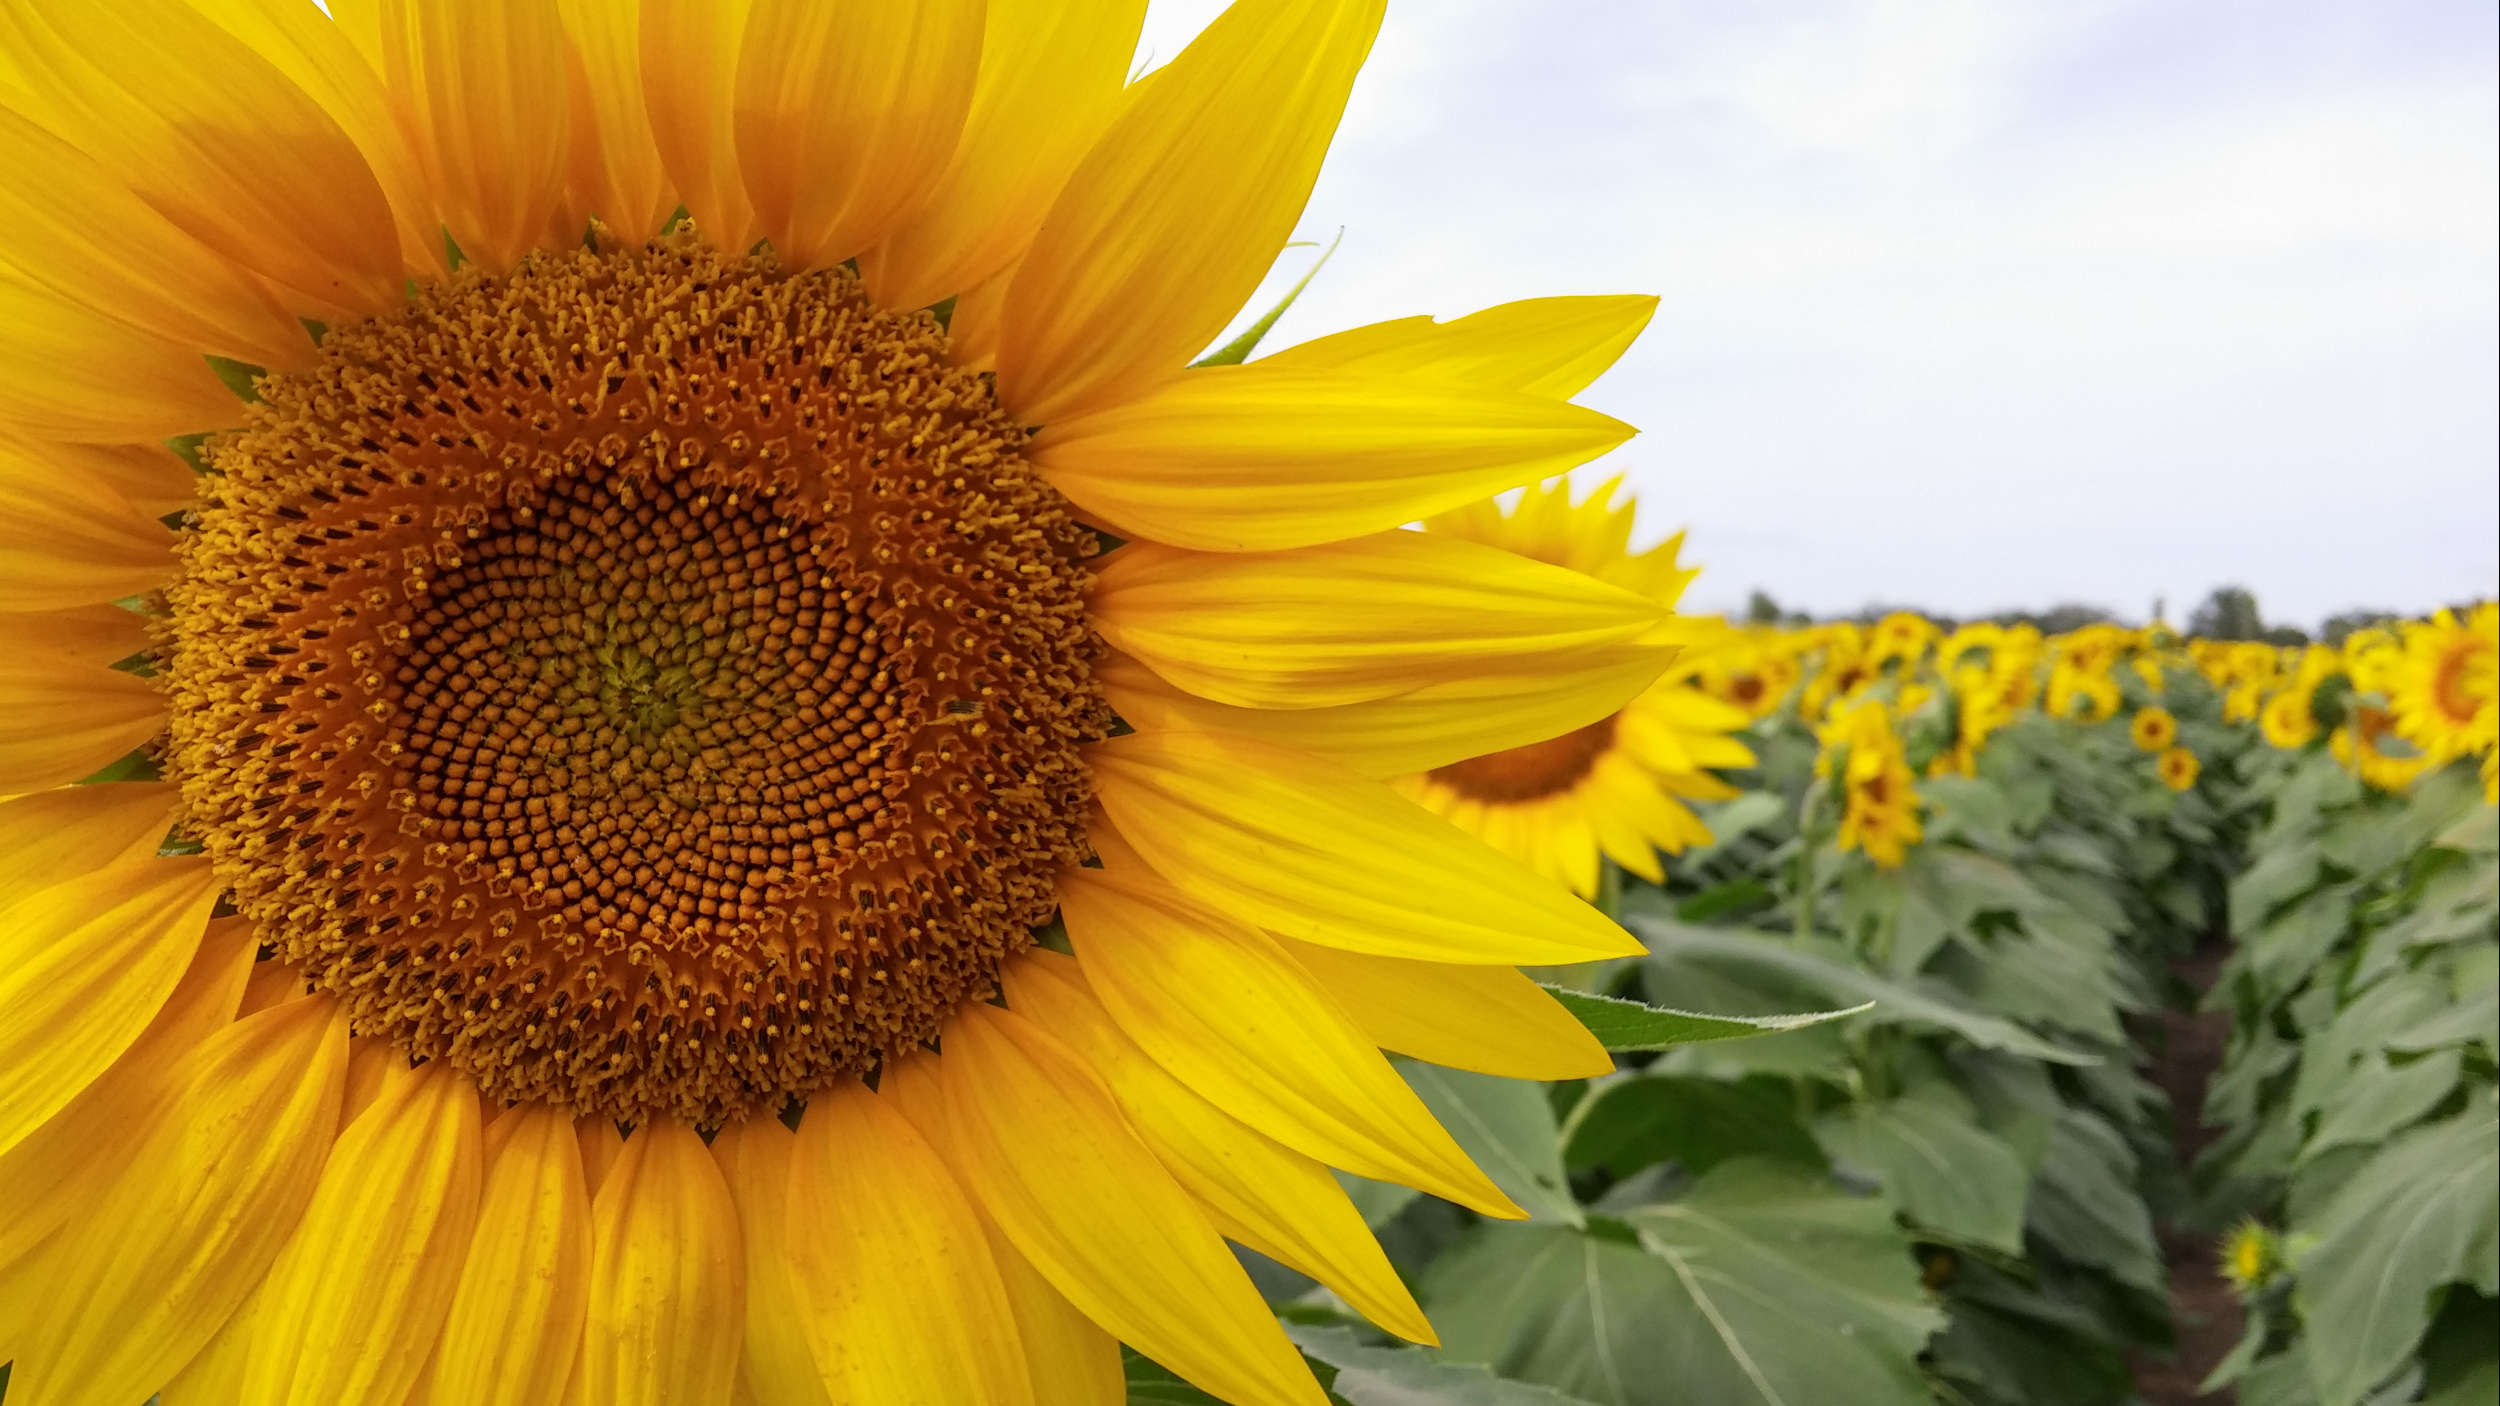 Sunflowers Tumblr Header